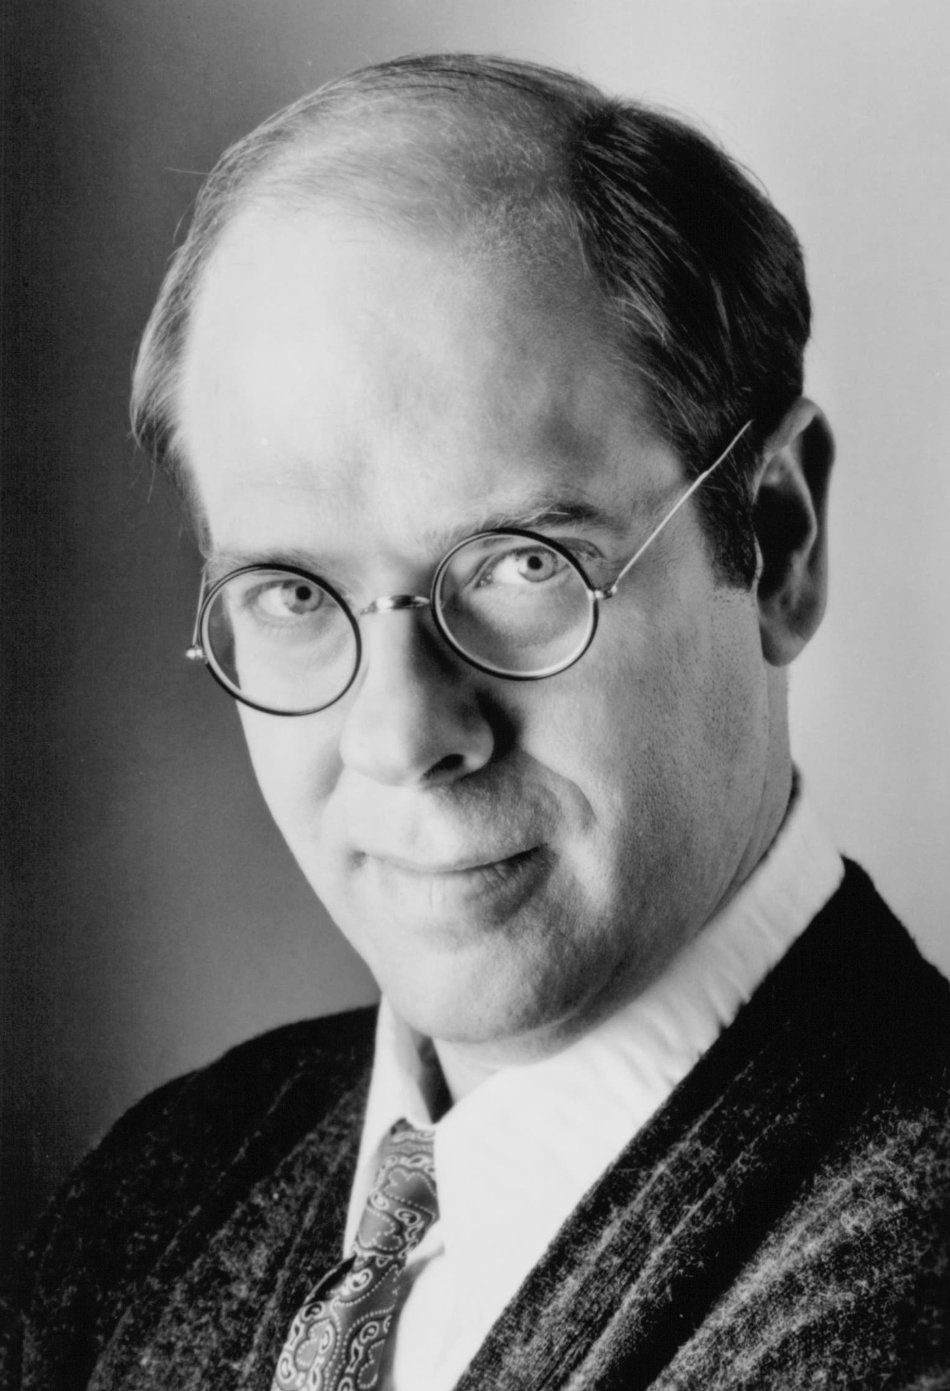 stephen tobolowsky californicationstephen tobolowsky groundhog day, stephen tobolowsky movies, stephen tobolowsky, stephen tobolowsky net worth, stephen tobolowsky's birthday party, stephen tobolowsky seinfeld, stephen tobolowsky law and order svu, stephen tobolowsky podcast, stephen tobolowsky glee, stephen tobolowsky spaceballs, stephen tobolowsky deadwood, stephen tobolowsky height, stephen tobolowsky stevie ray vaughan, stephen tobolowsky californication, stephen tobolowsky heroes, stephen tobolowsky book, stephen tobolowsky twitter, stephen tobolowsky community, stephen tobolowsky silicon valley, stephen tobolowsky mississippi burning